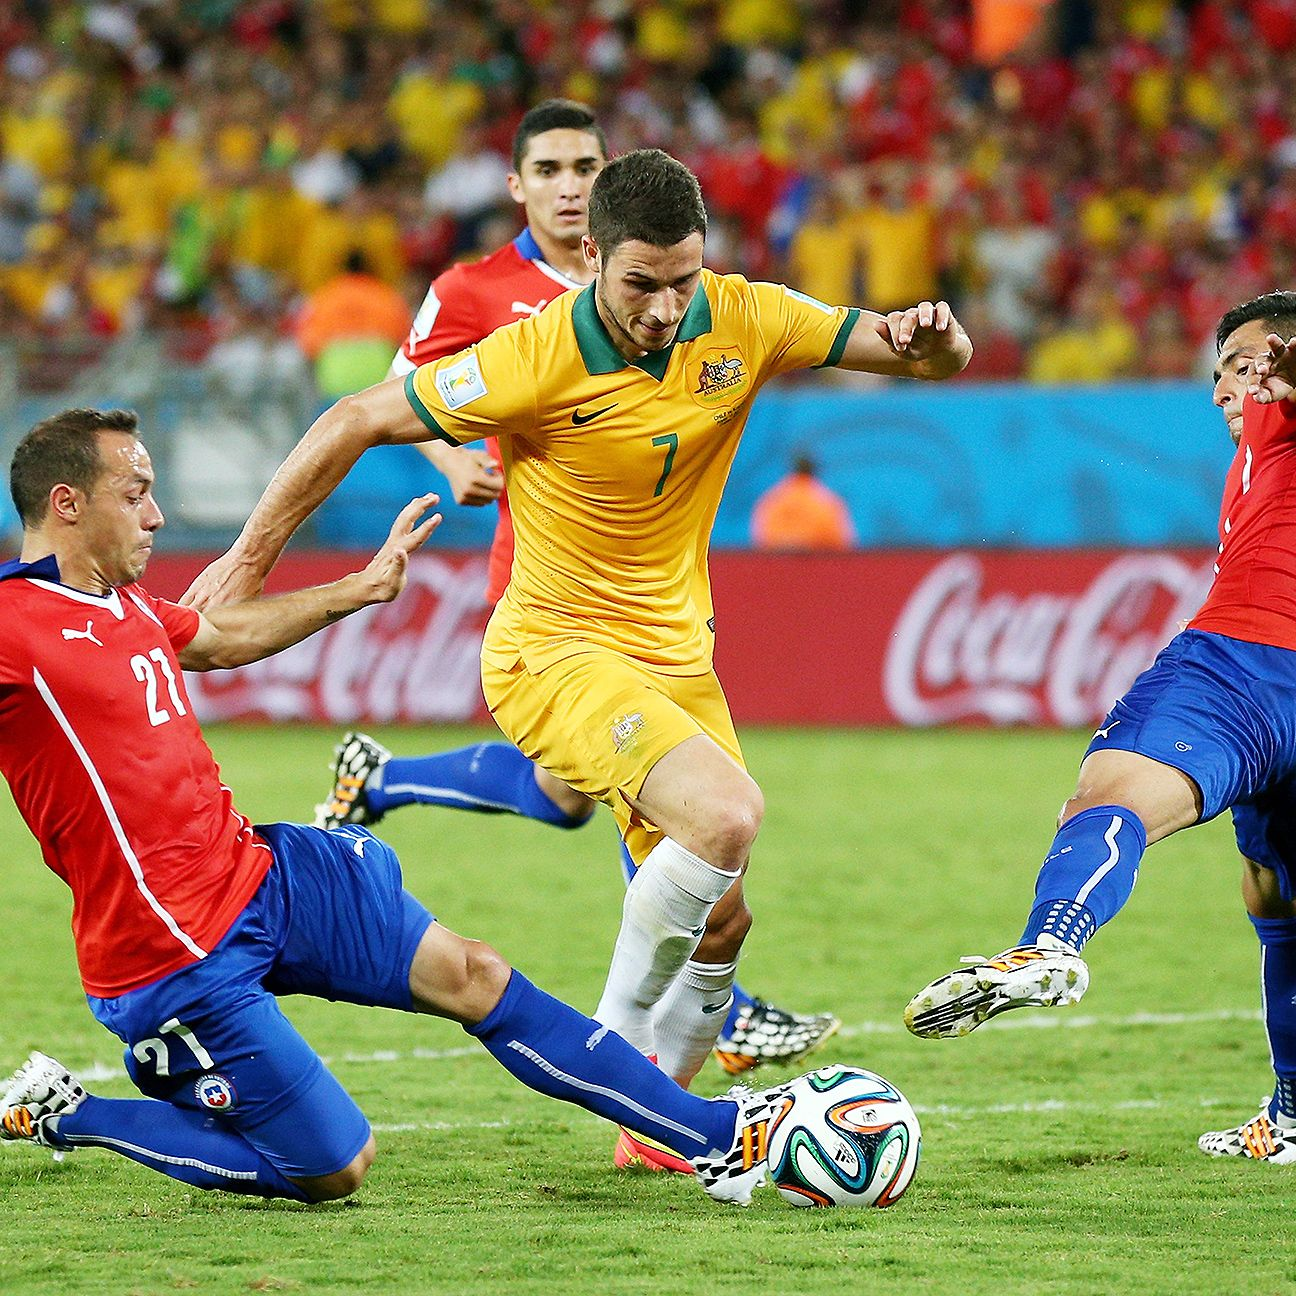 Mathew Leckie showed the kind of spirit vs. Chile that could make him a possible Cahill replacement.